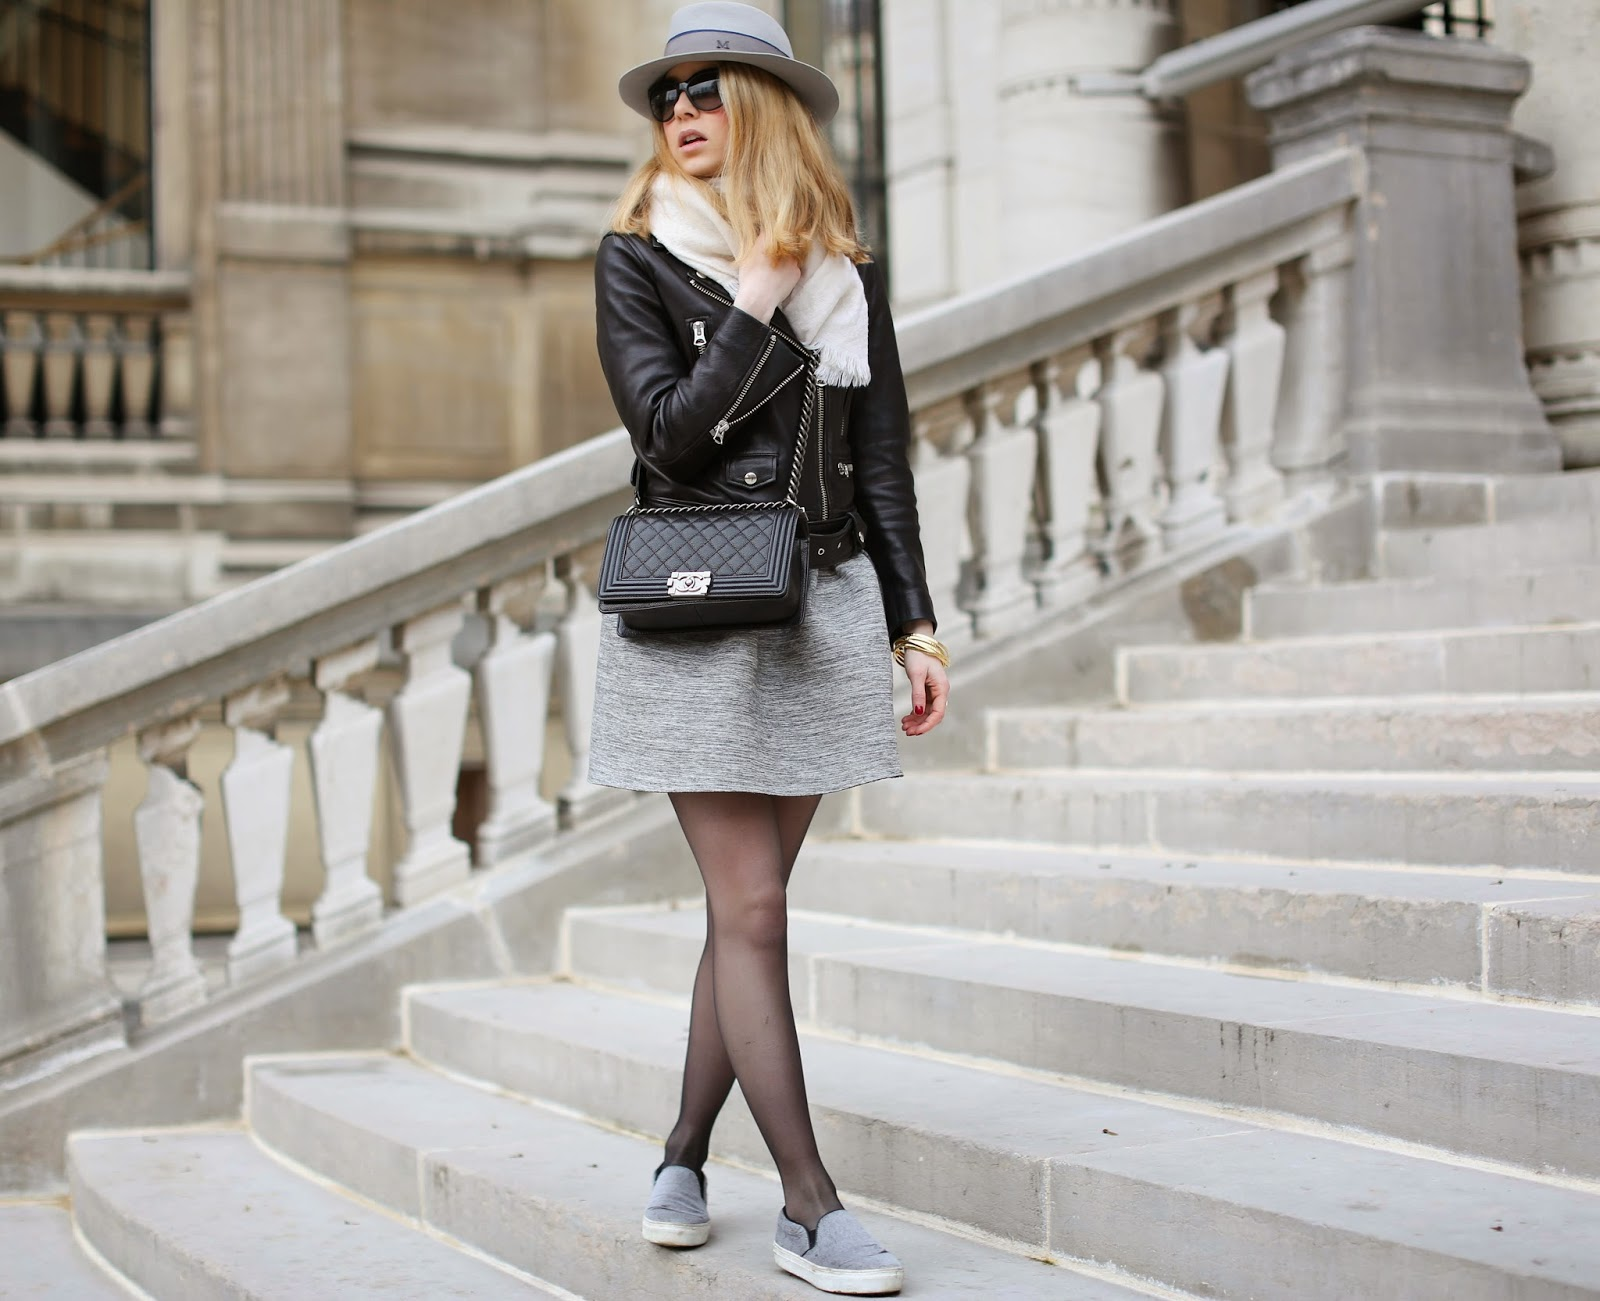 acne, skirt, céline, slipons, maison michel, fendi, streetstyle, fashion blogger